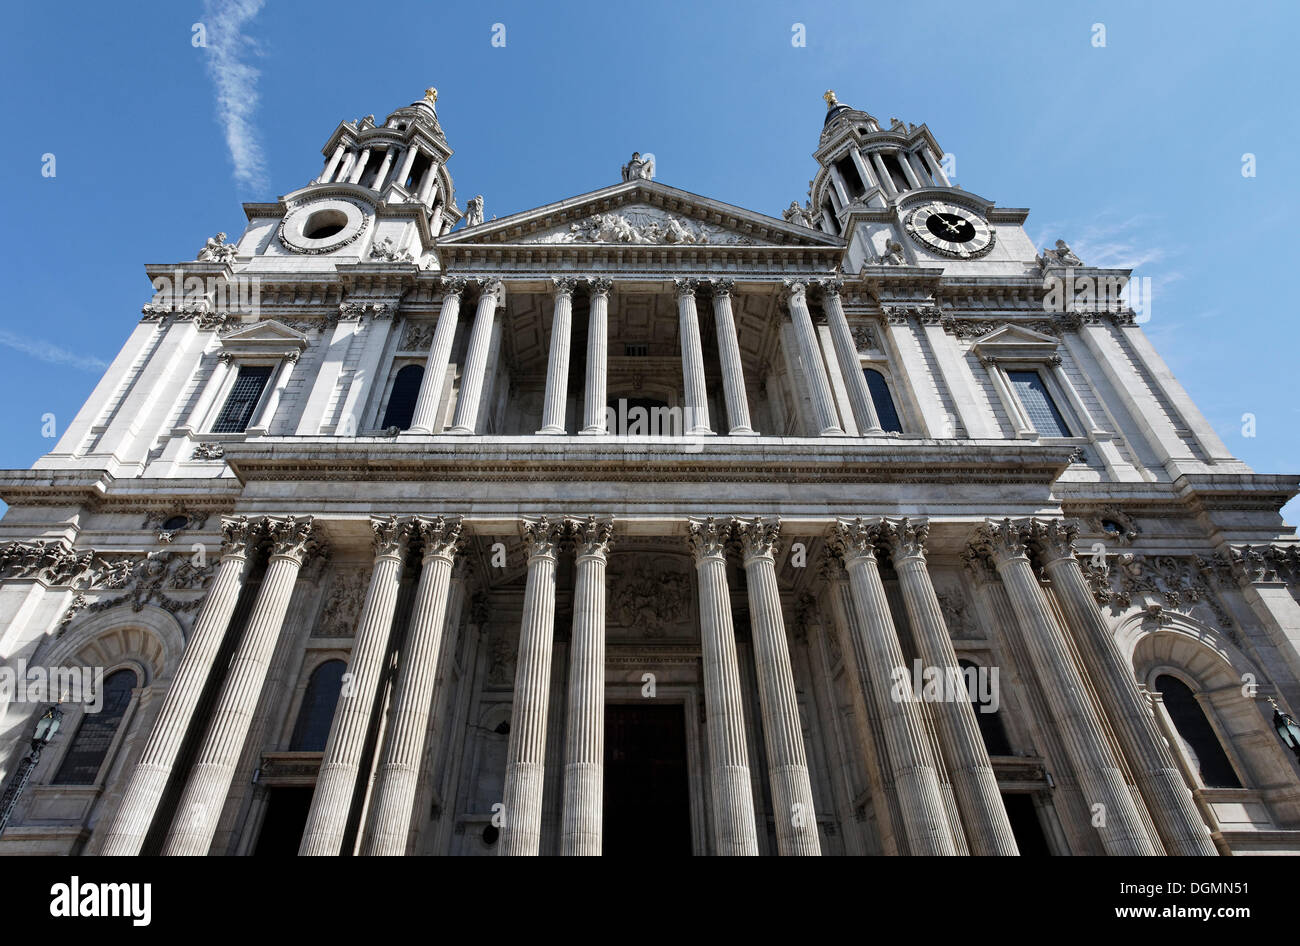 St. Paul's Cathedral, London, England, United Kingdom, Europe - Stock Image